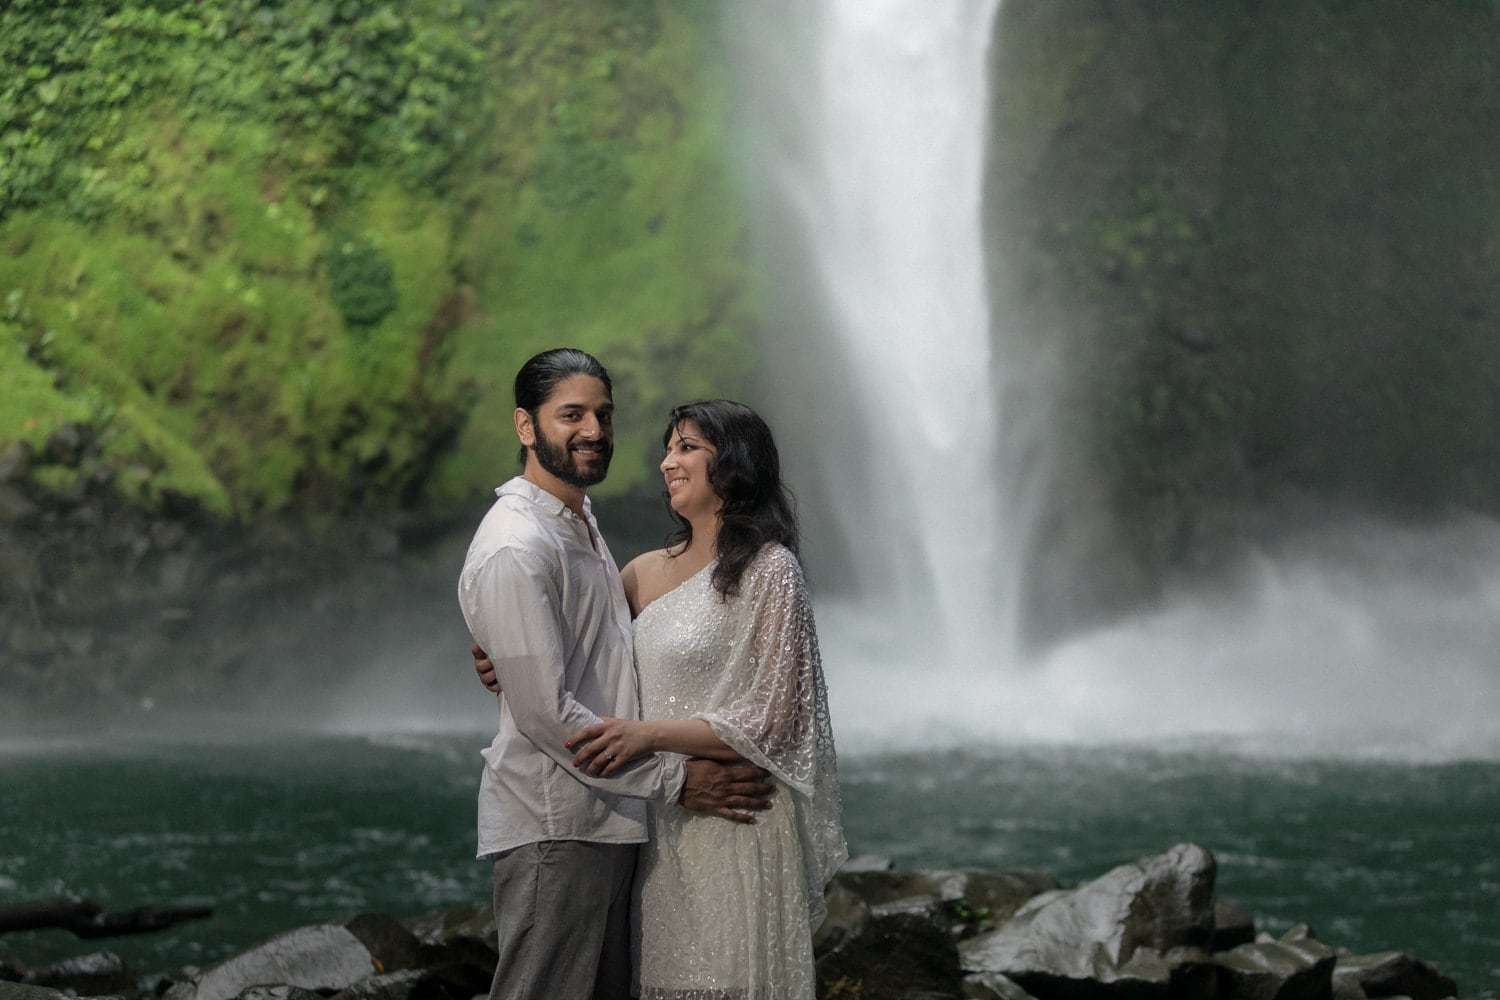 Amberene-Farhan-Engagement-Photos-La-Fortuna-Waterfall-6.jpg